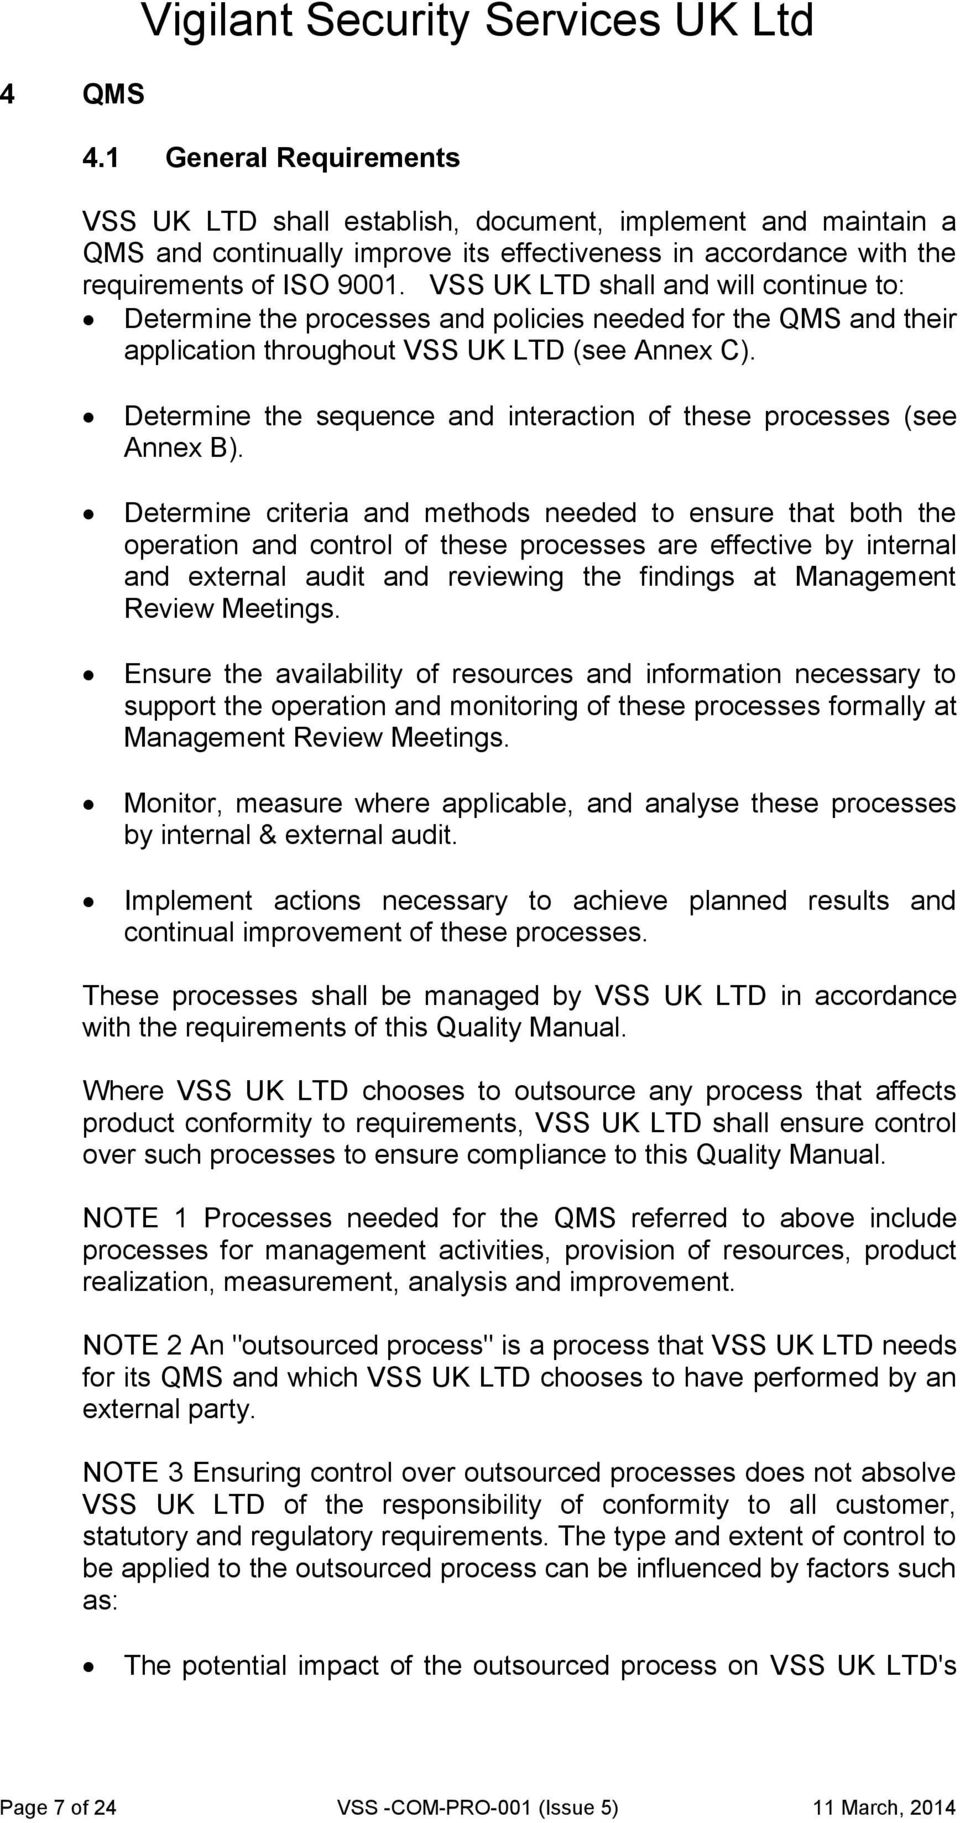 VSS UK LTD shall and will continue to: Determine the processes and policies needed for the QMS and their application throughout VSS UK LTD (see Annex C).